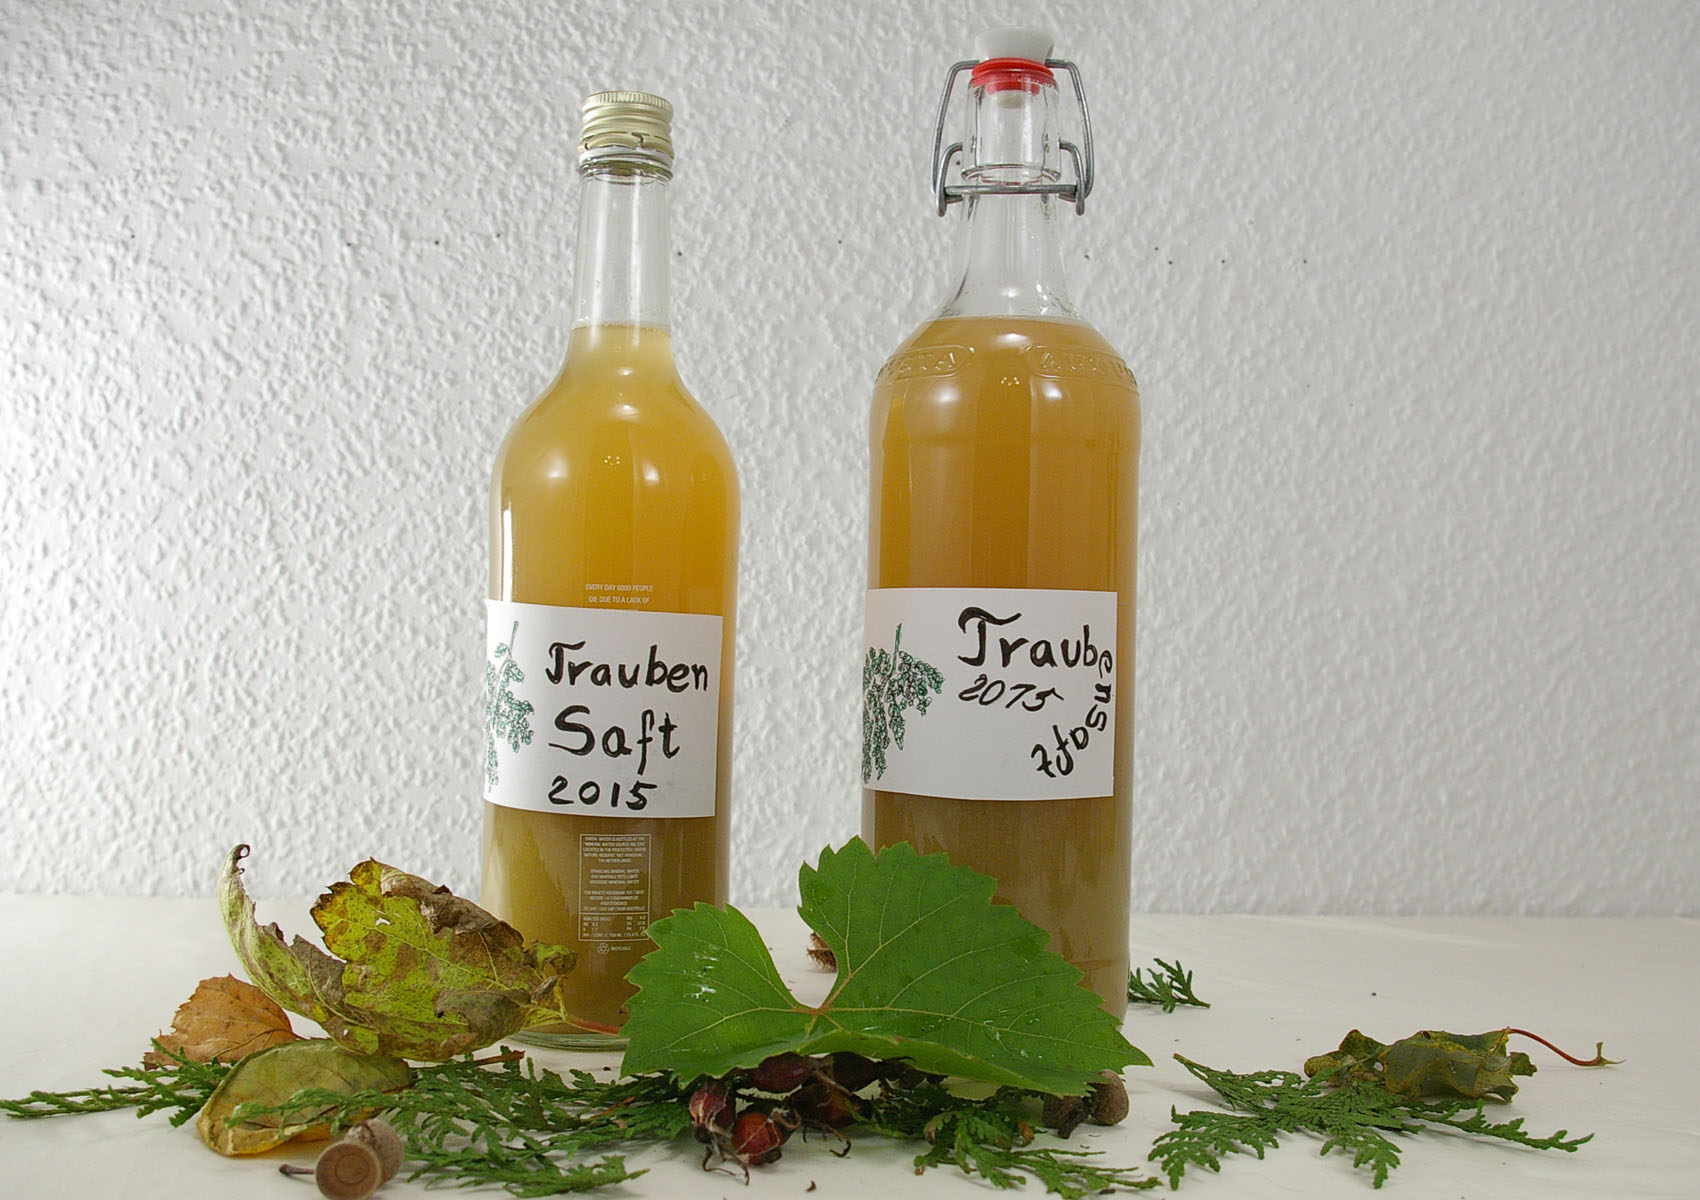 Traubensaft in Flaschen